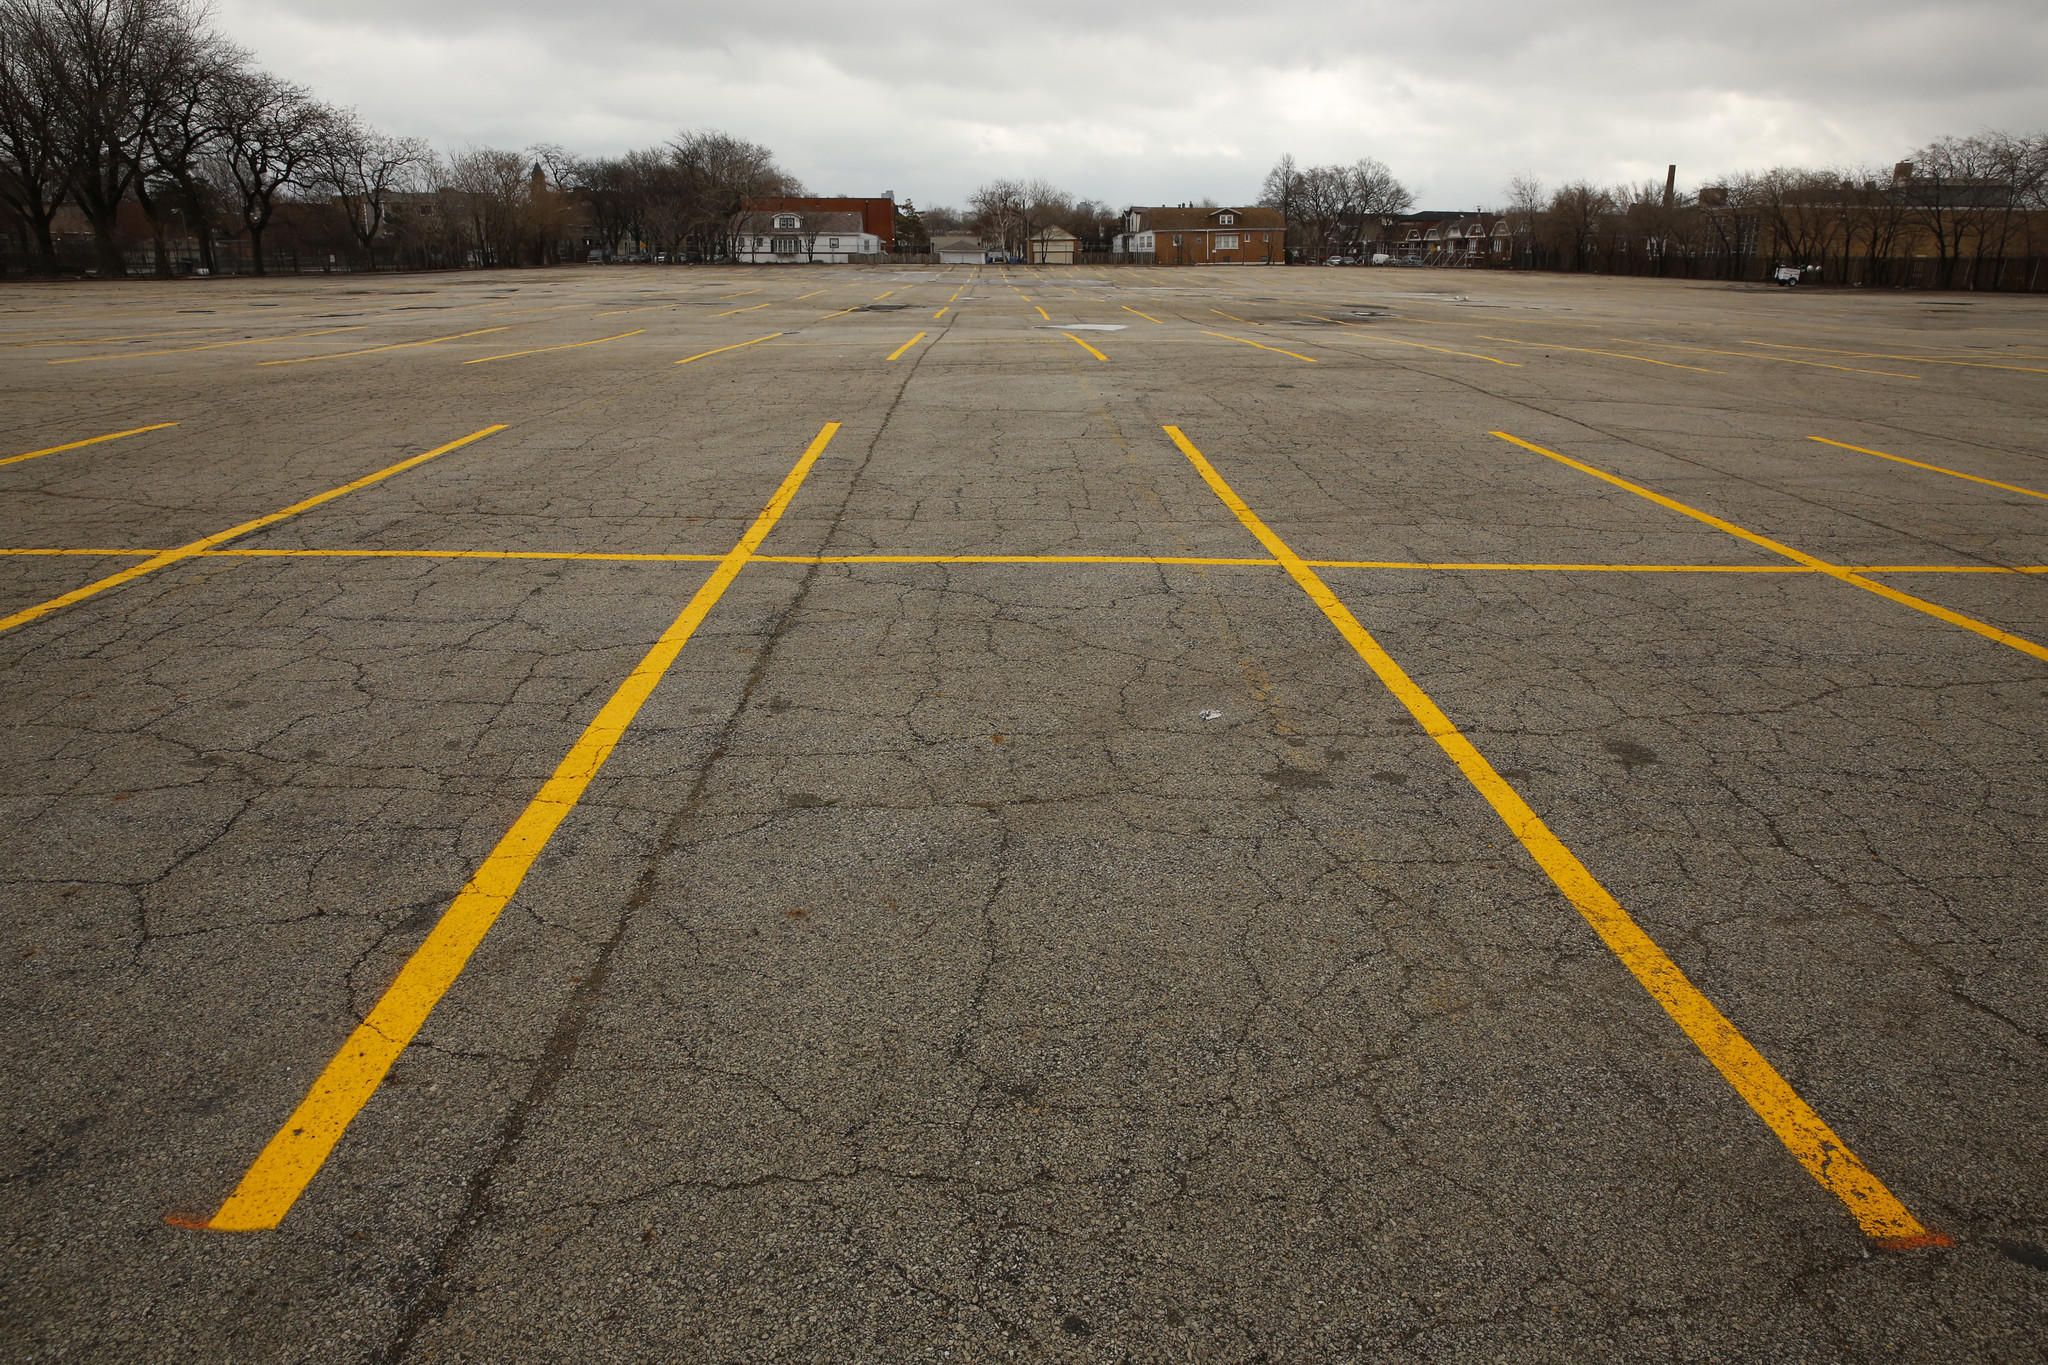 The Chicago Cubs remote parking lot at 3900 N. Rockwell St., is empty on opening day.